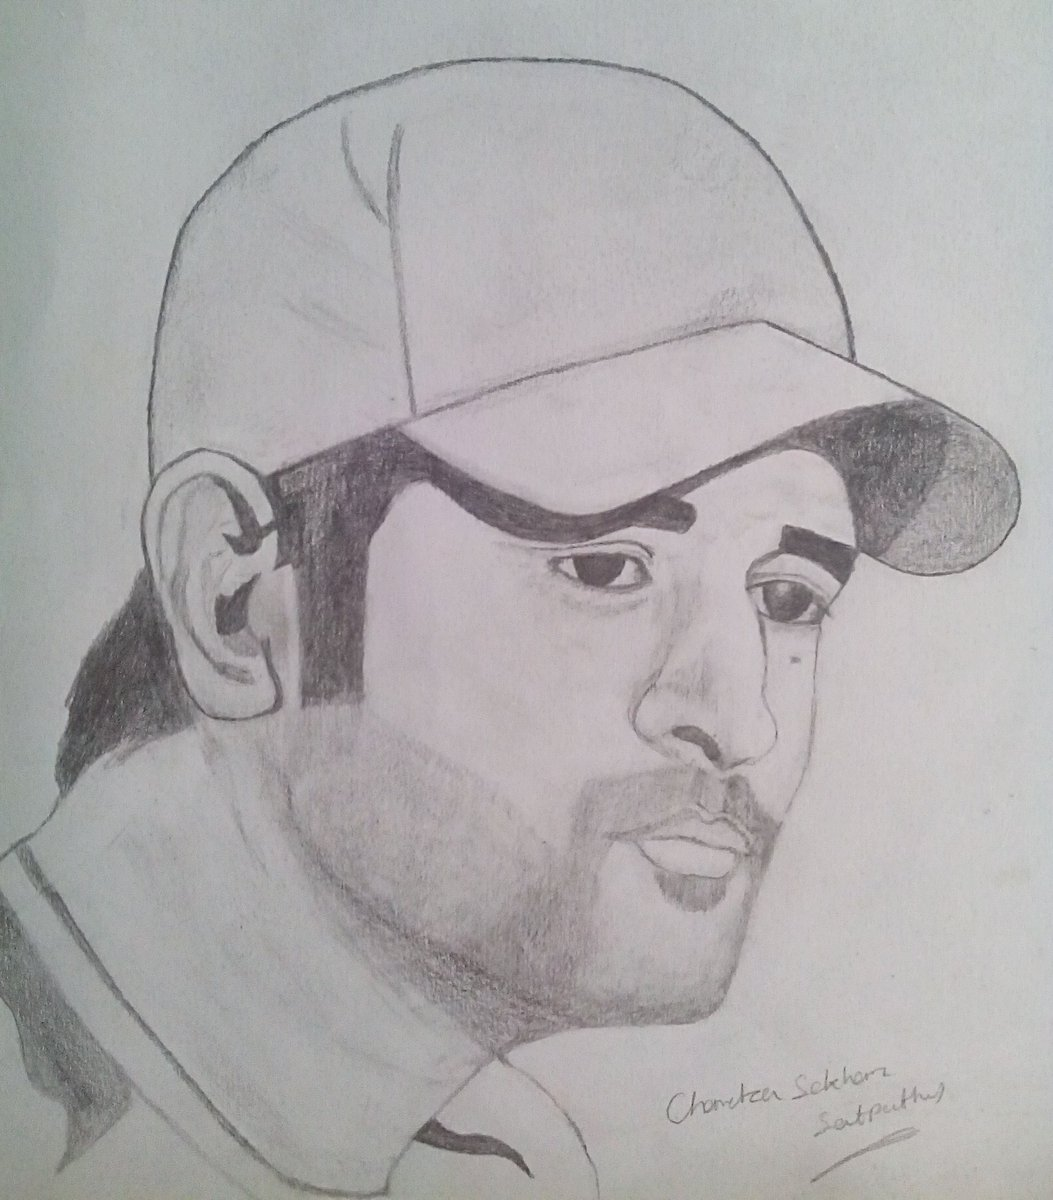 Fanart msdhoni mahi like retweetpic twitter com nmzeofmk68